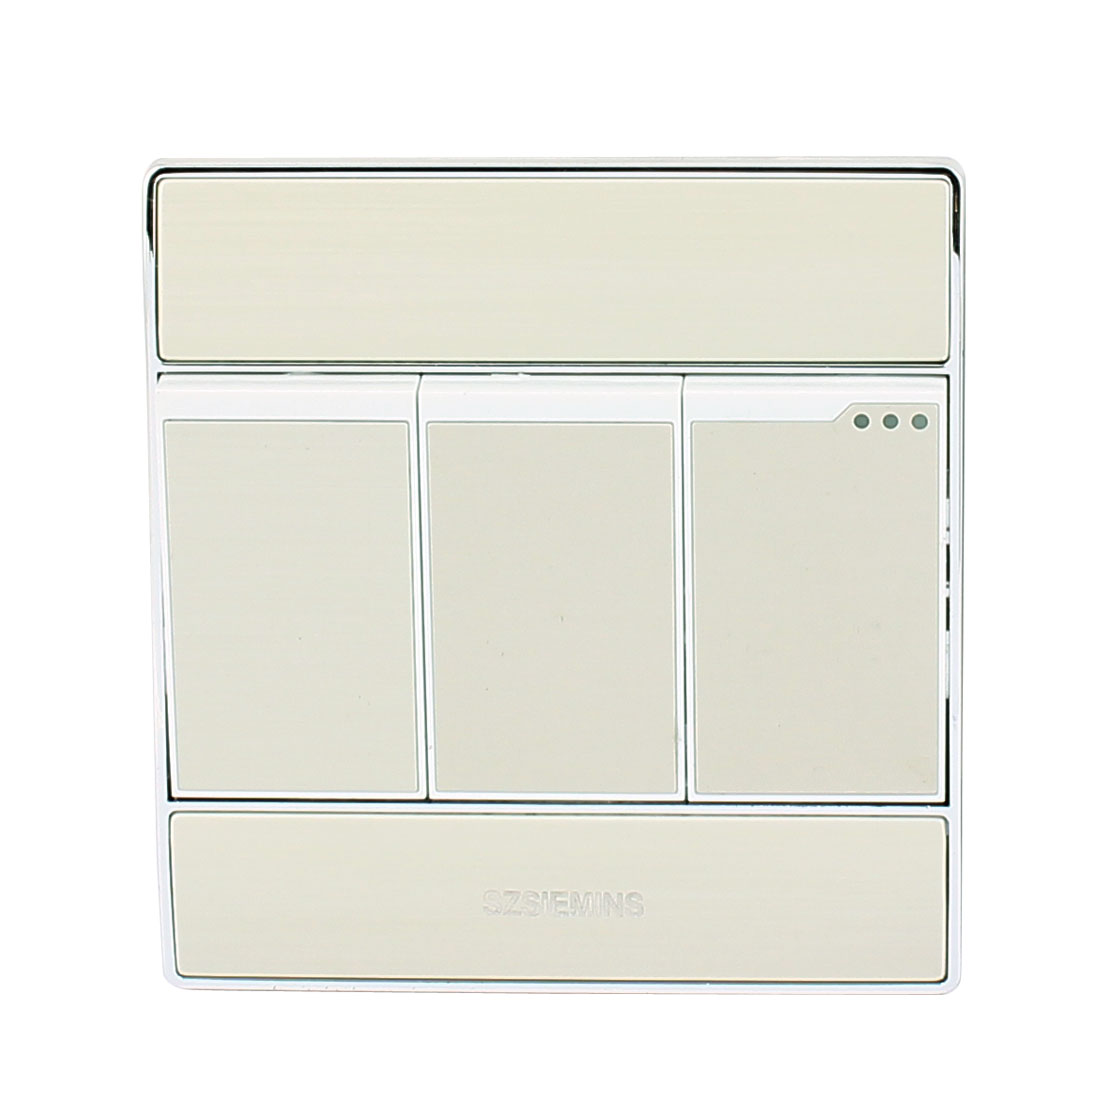 AC 250V 10A 3 Gang 2 Way On/Off Press Button Wall Switch Light Control Silver Tone For Home Mounting